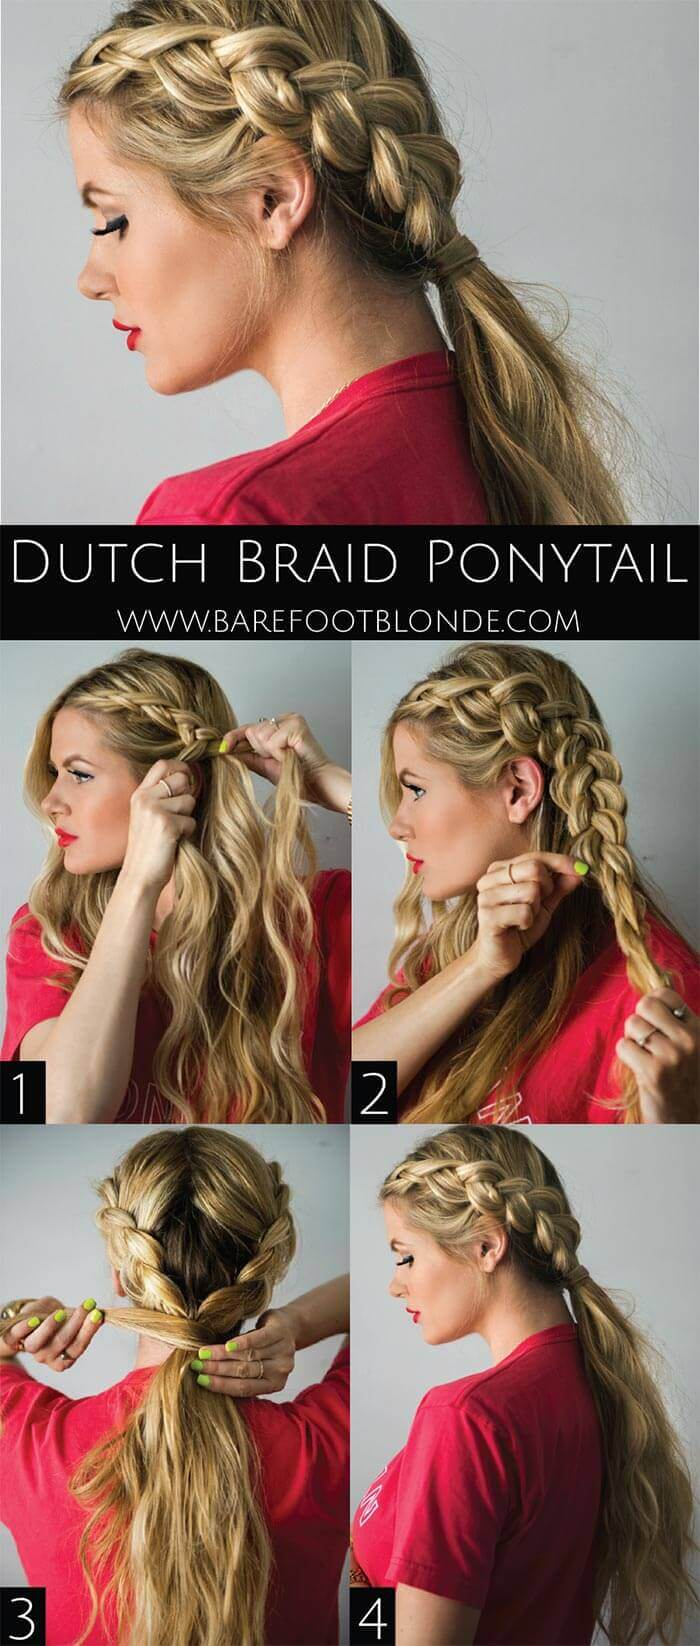 Dutch braid hairstyles: Tutorial